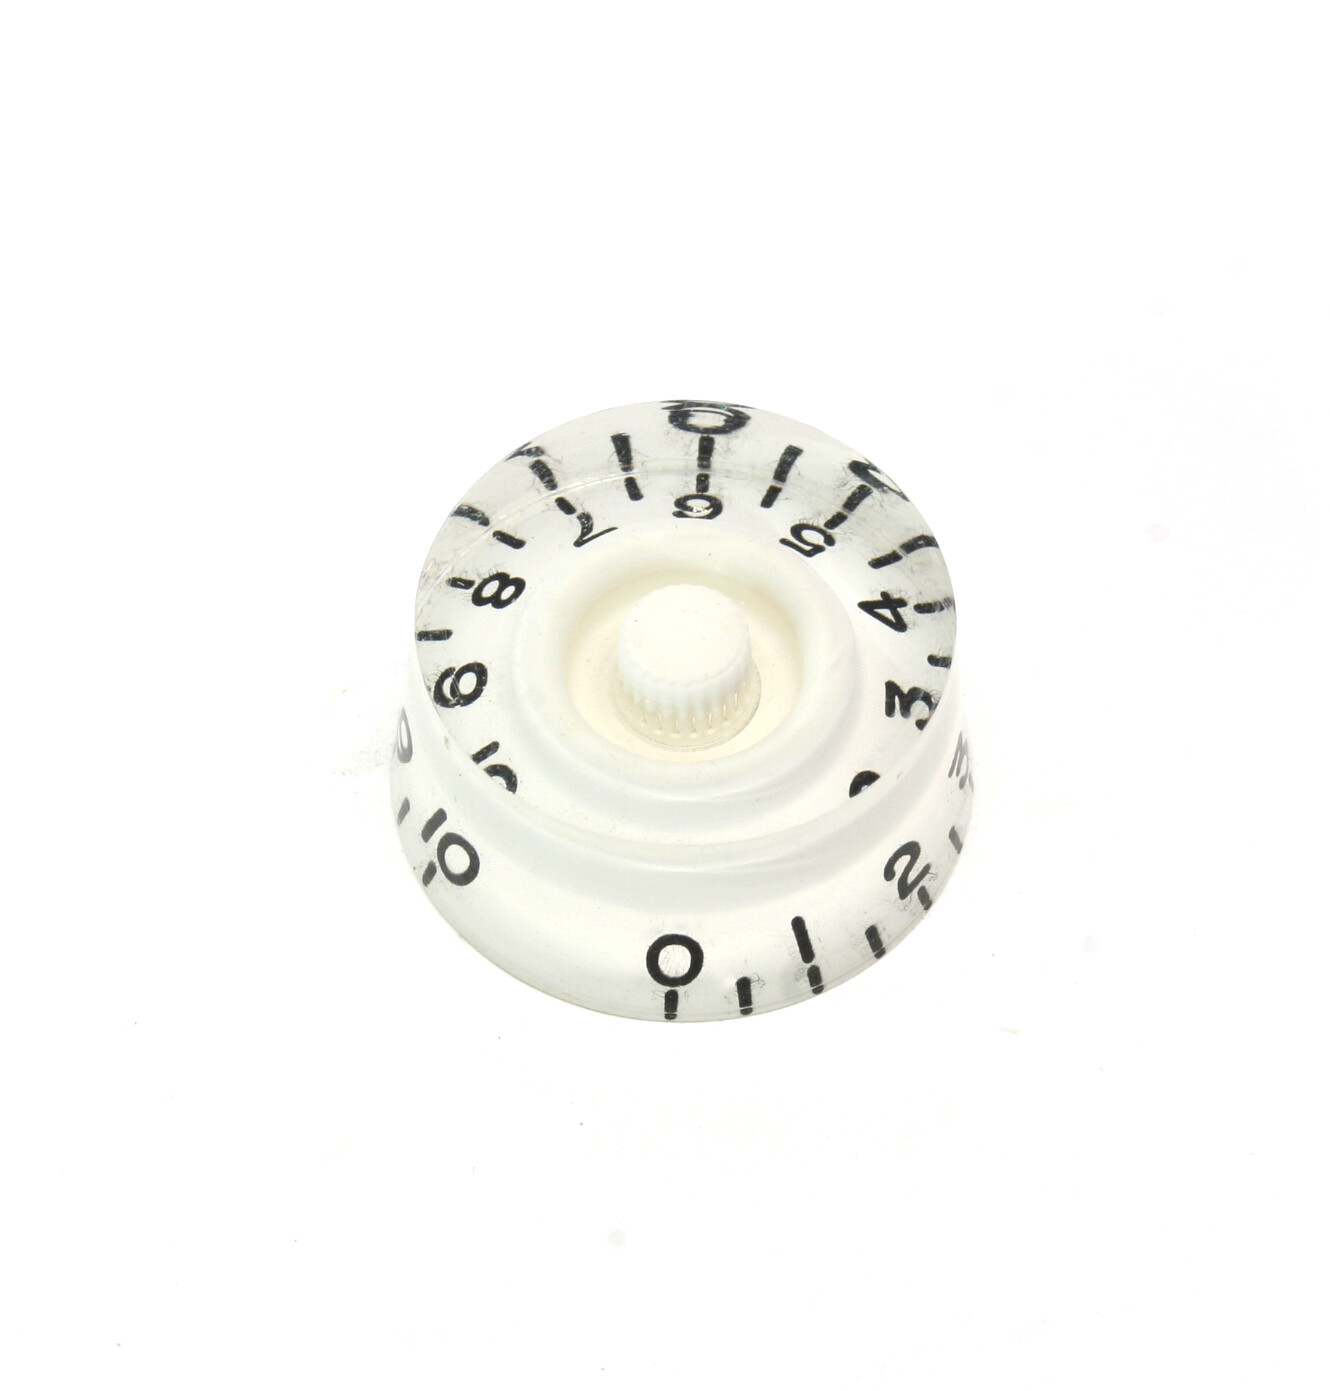 White Speed knobs vintage style numbers, fits USA split shaft pots.